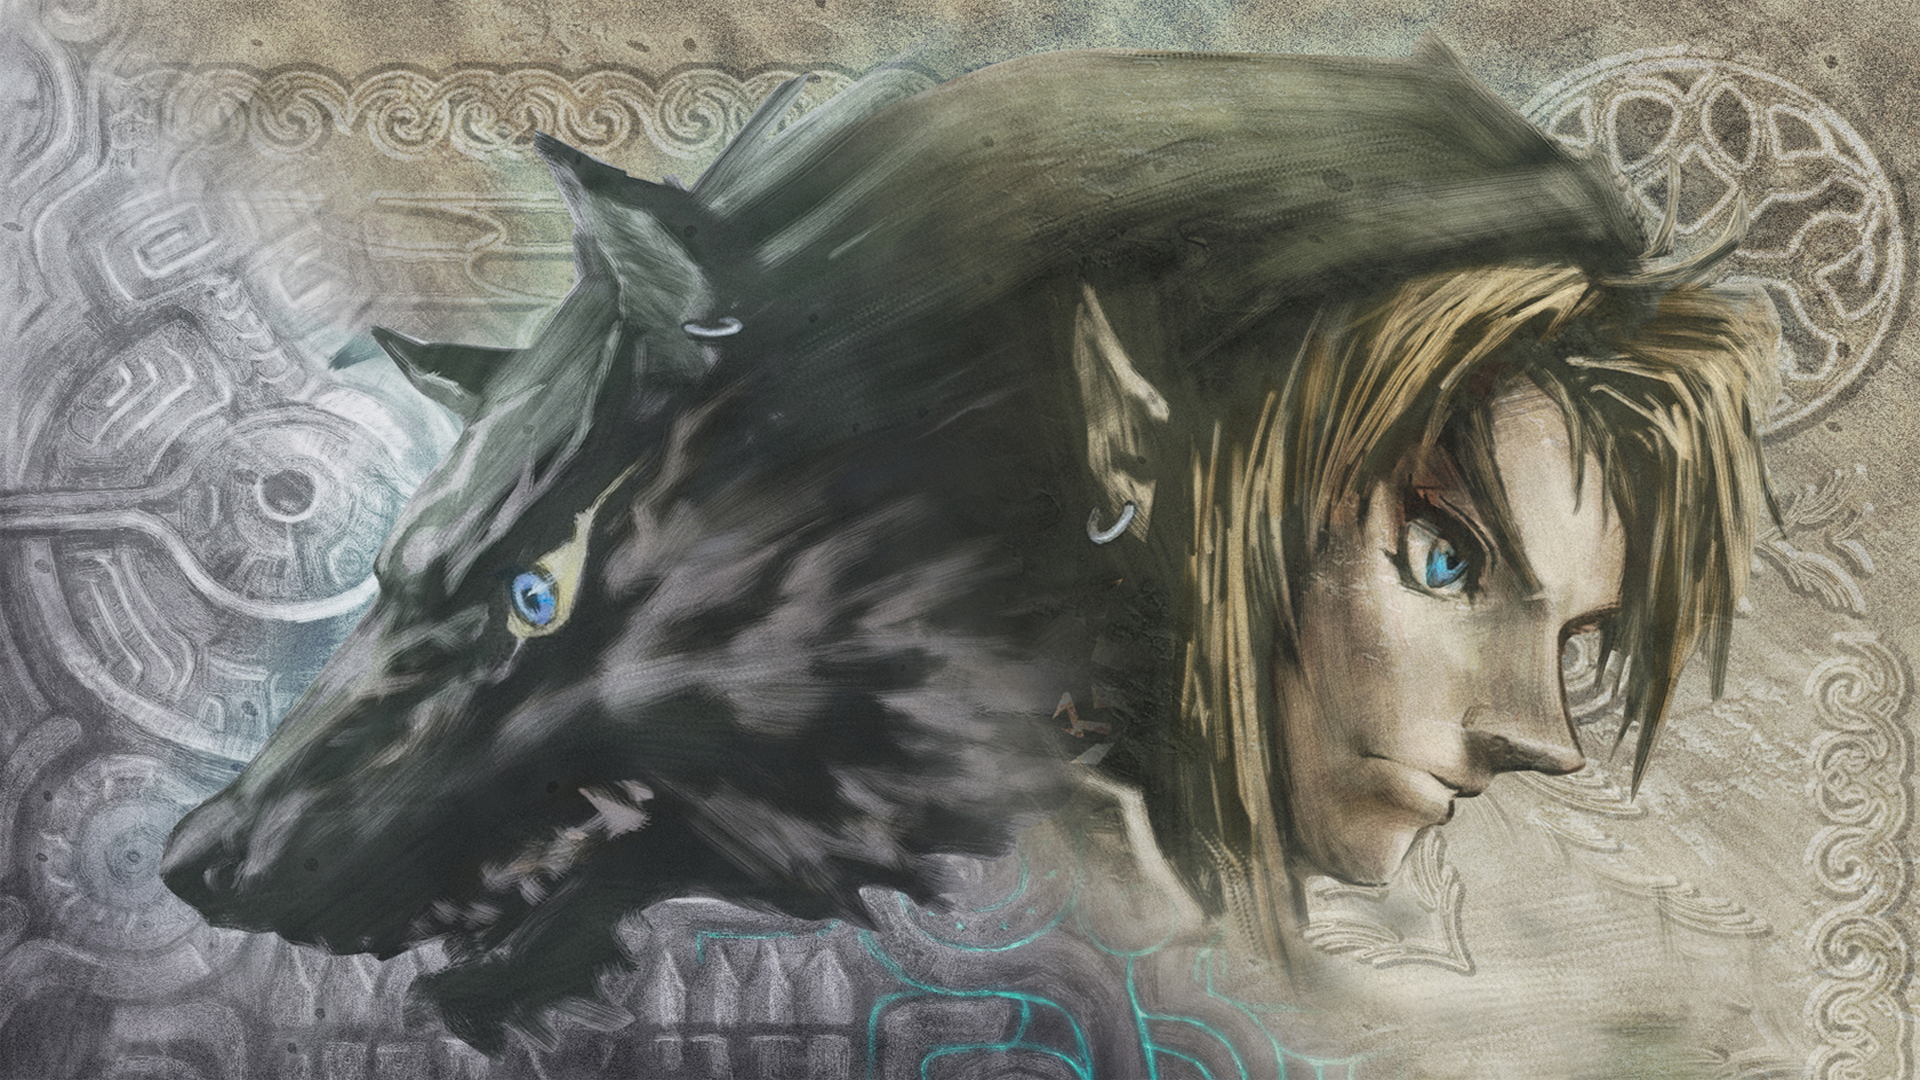 The Legend of Zelda: Twilight Princess HD comes with a Wolf Link